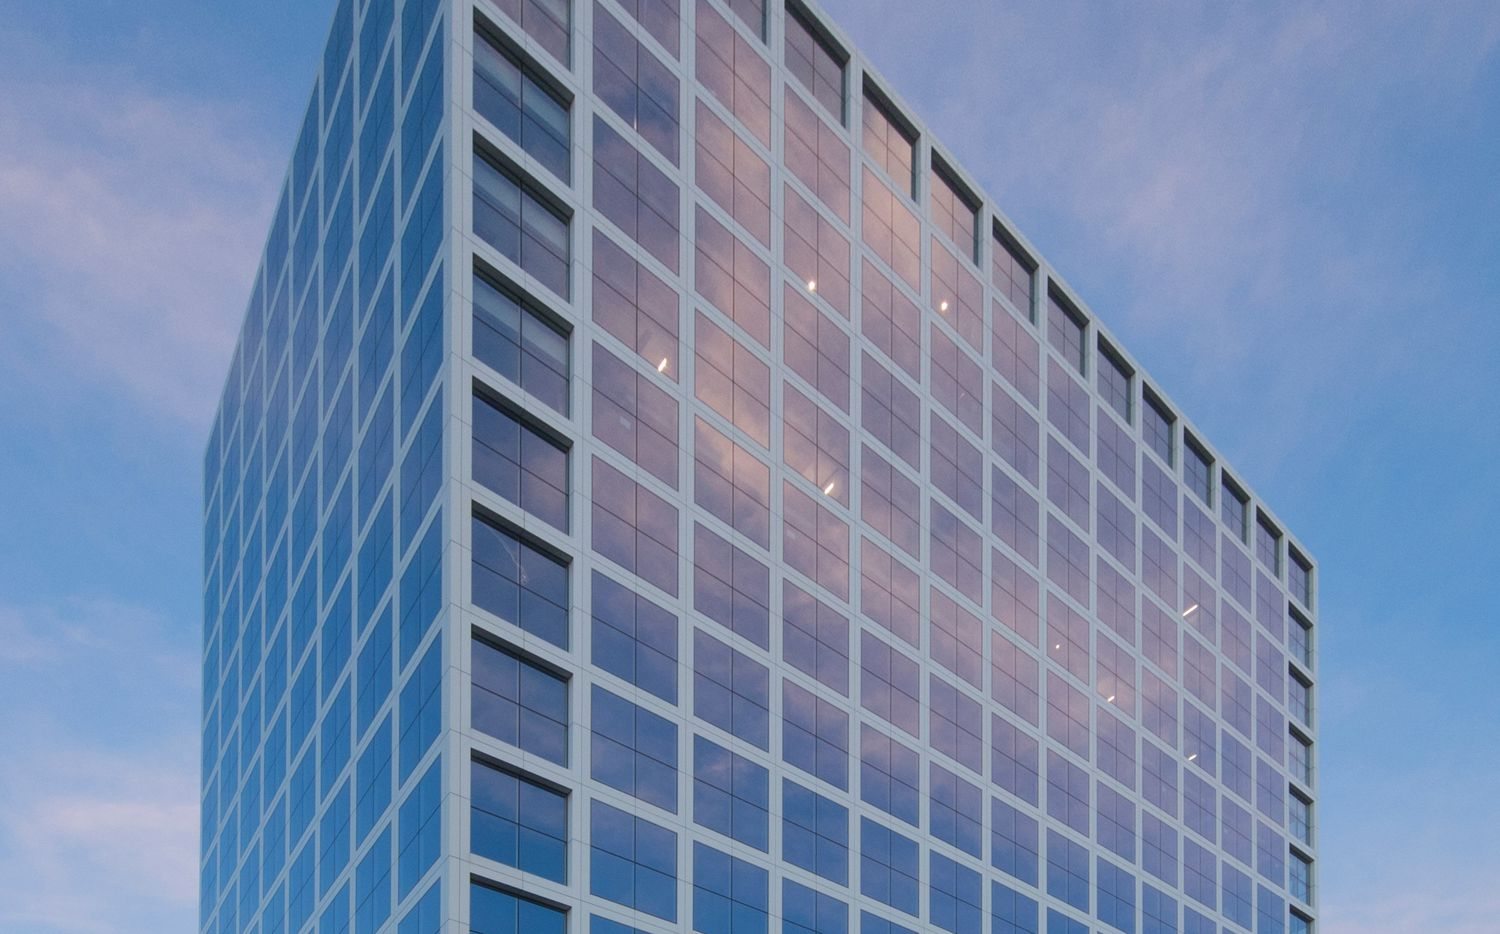 NTT Data is expanding its new office in Legacy West.